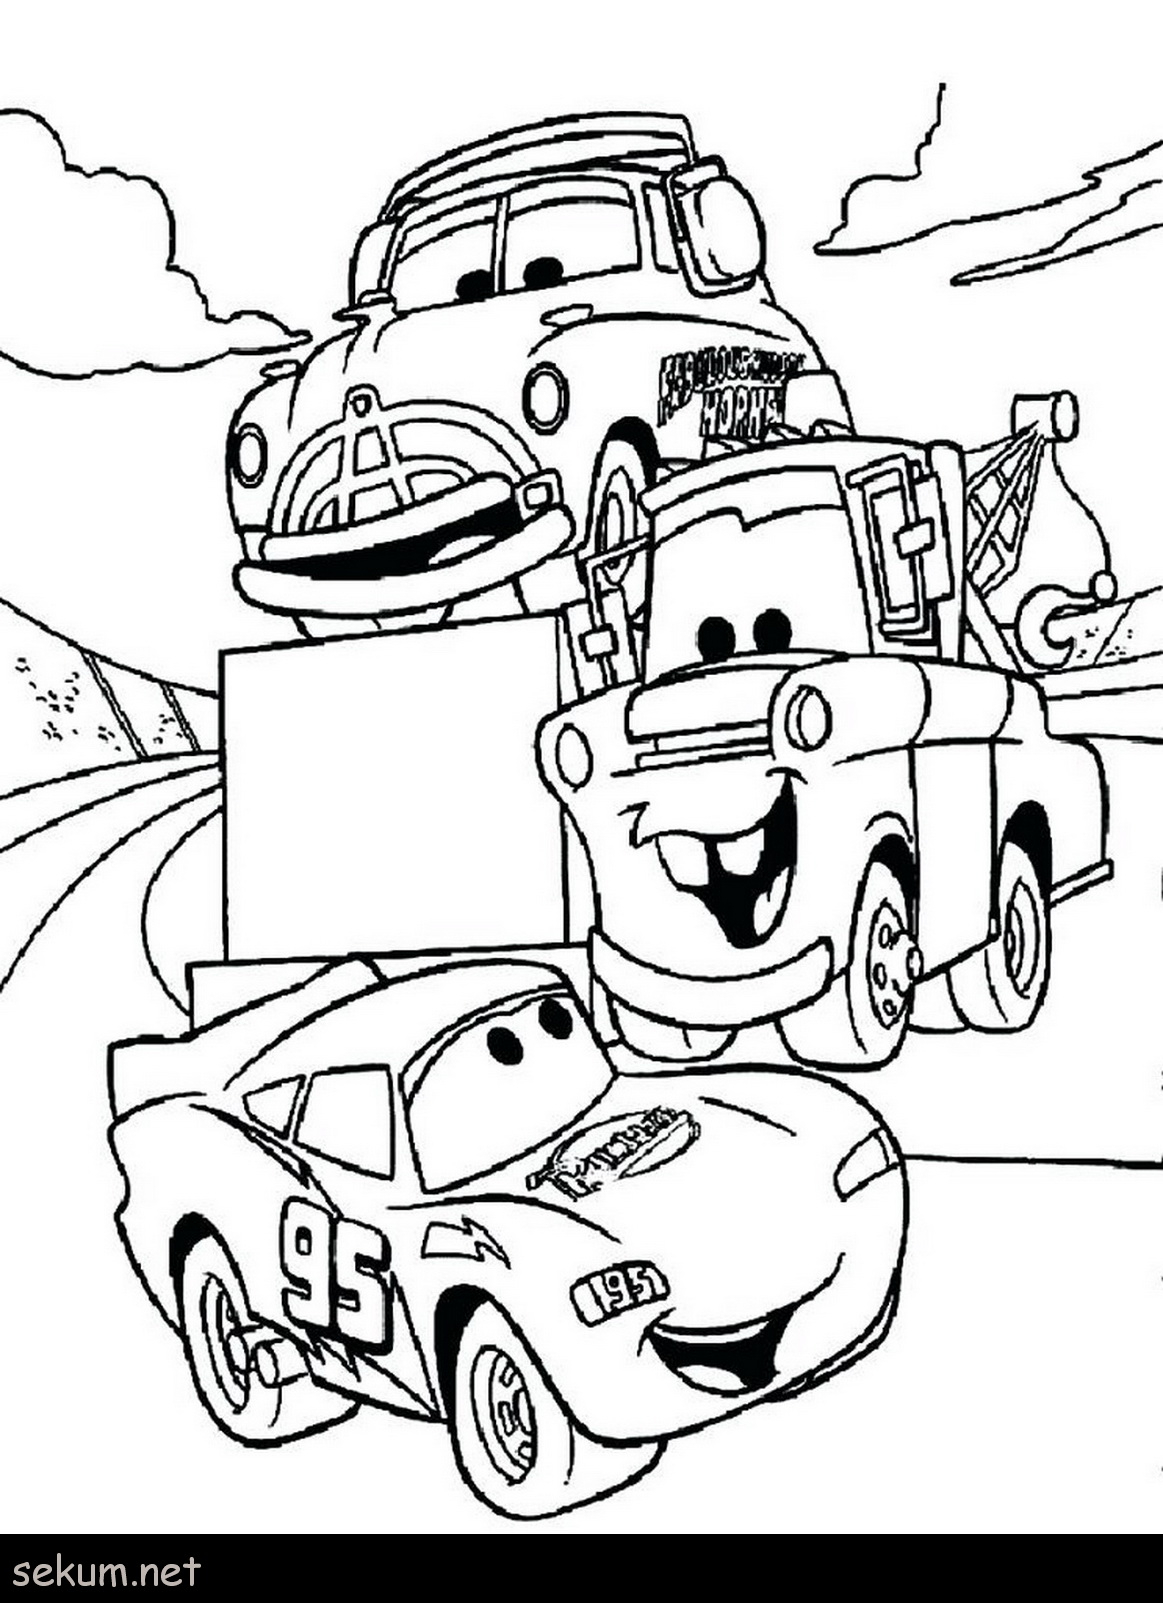 Printable Coloring Pages Cars Coloring Pages Cars Printable Coloring Pages Patinsudouest